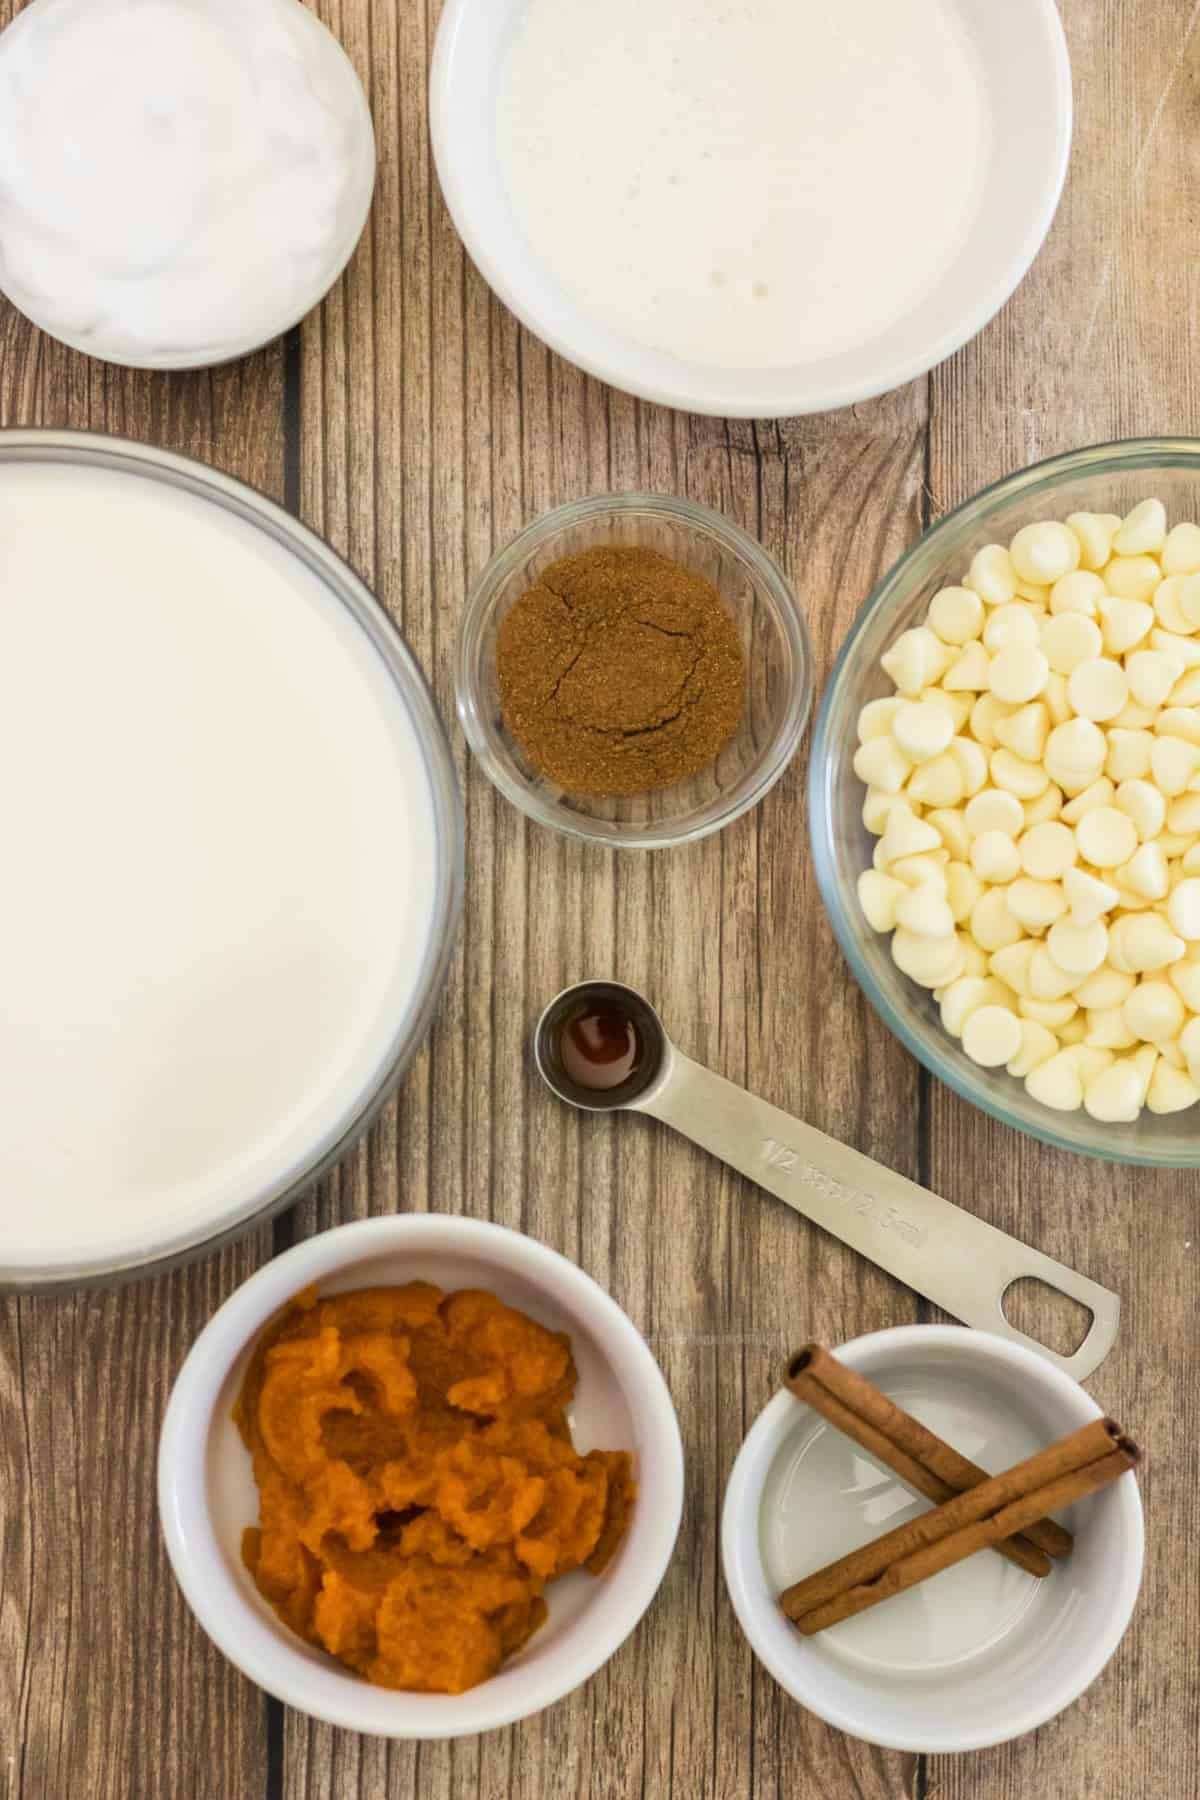 Overhead view of ingredients needed for recipe on a wooden background.